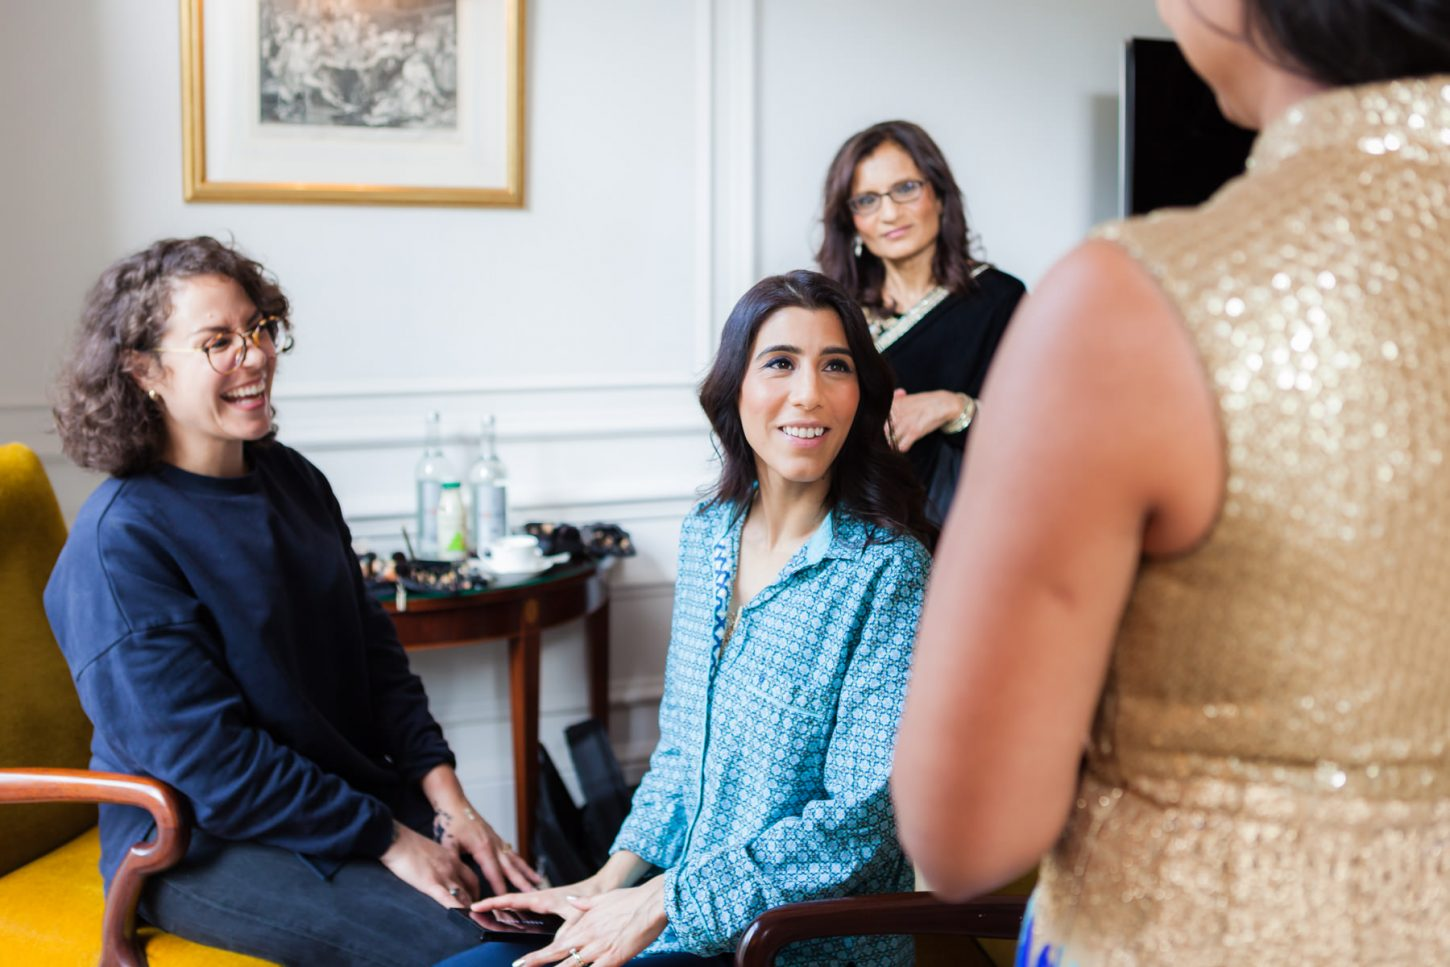 A bride to be is smiling with other joyful women at Mandarin Oriental Hotel in London.